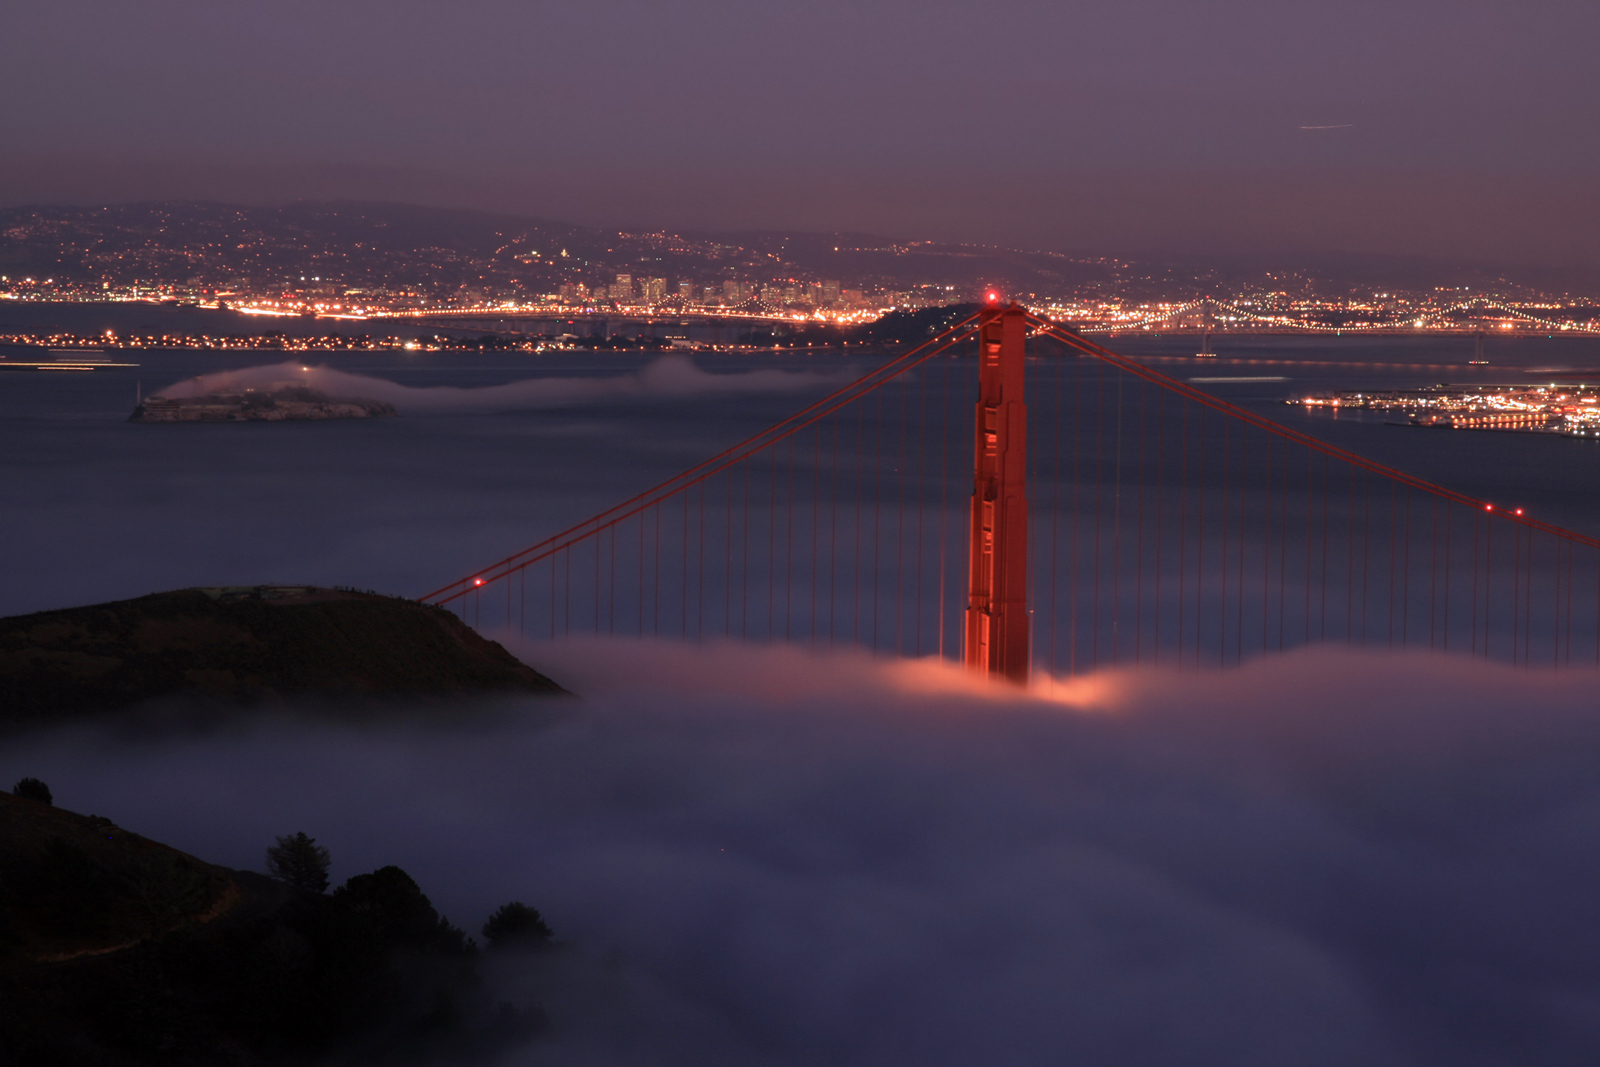 4. Golden Gate Bridge, San Francisco, USA 4